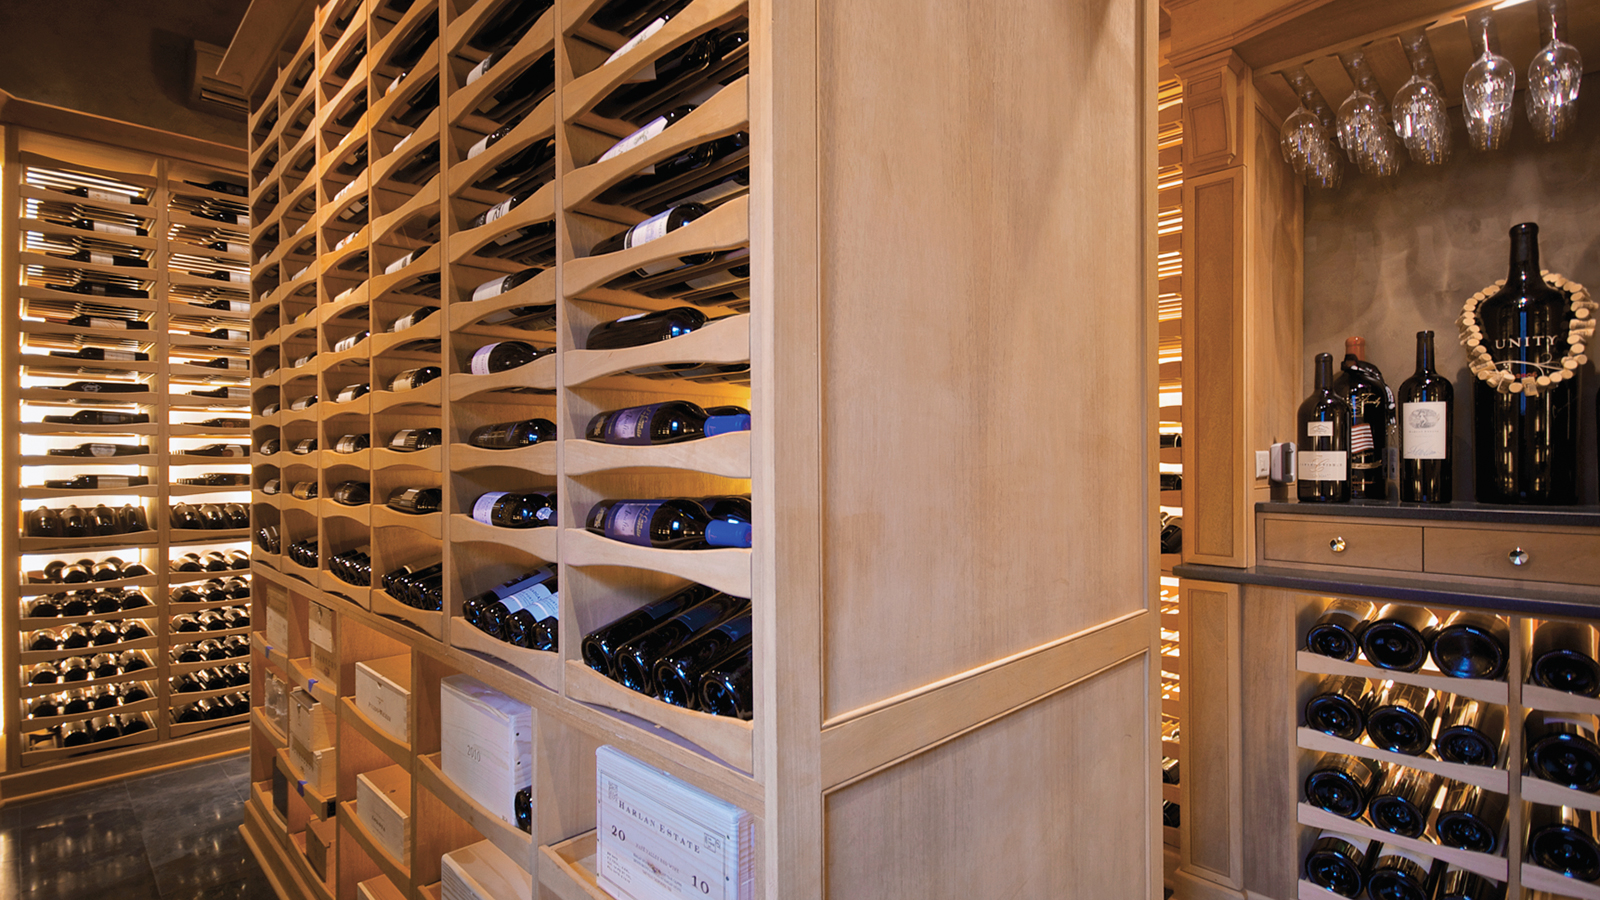 Wine Cellar Built in a Pool House | Private Cellars | Collecting | Wine Spectator